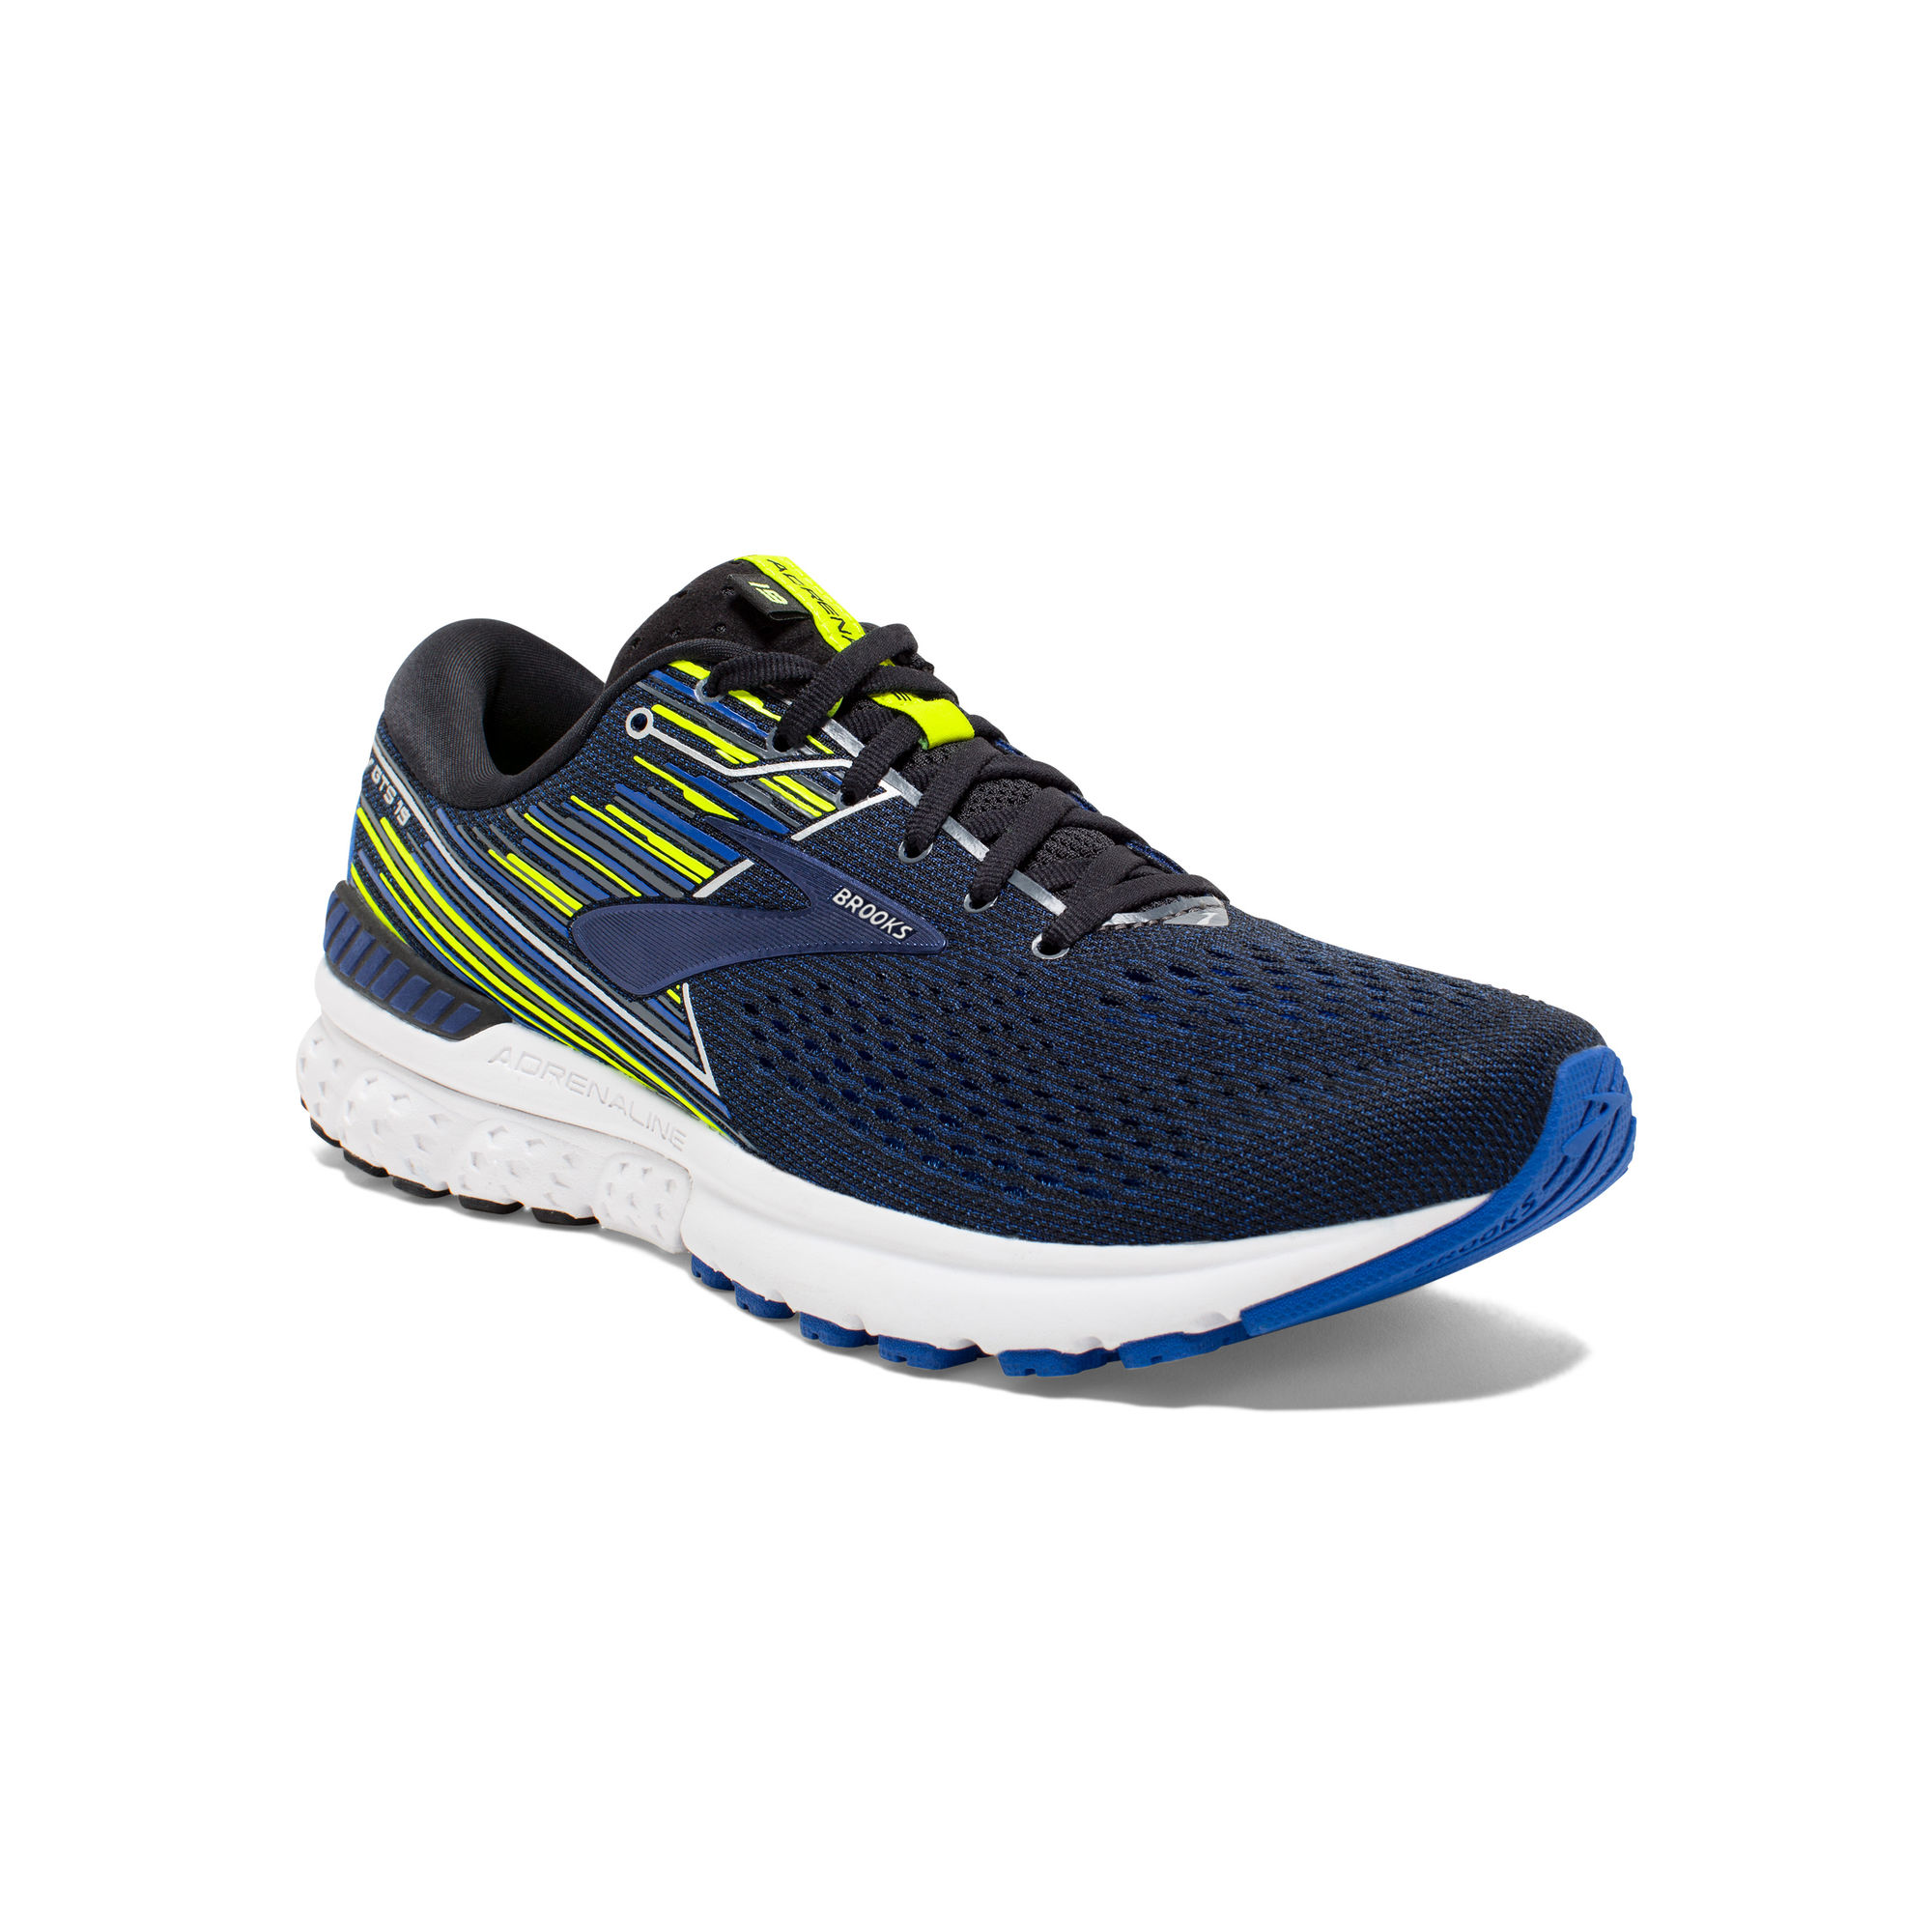 Brooks Adrenaline 19 D in Blau Schwarz